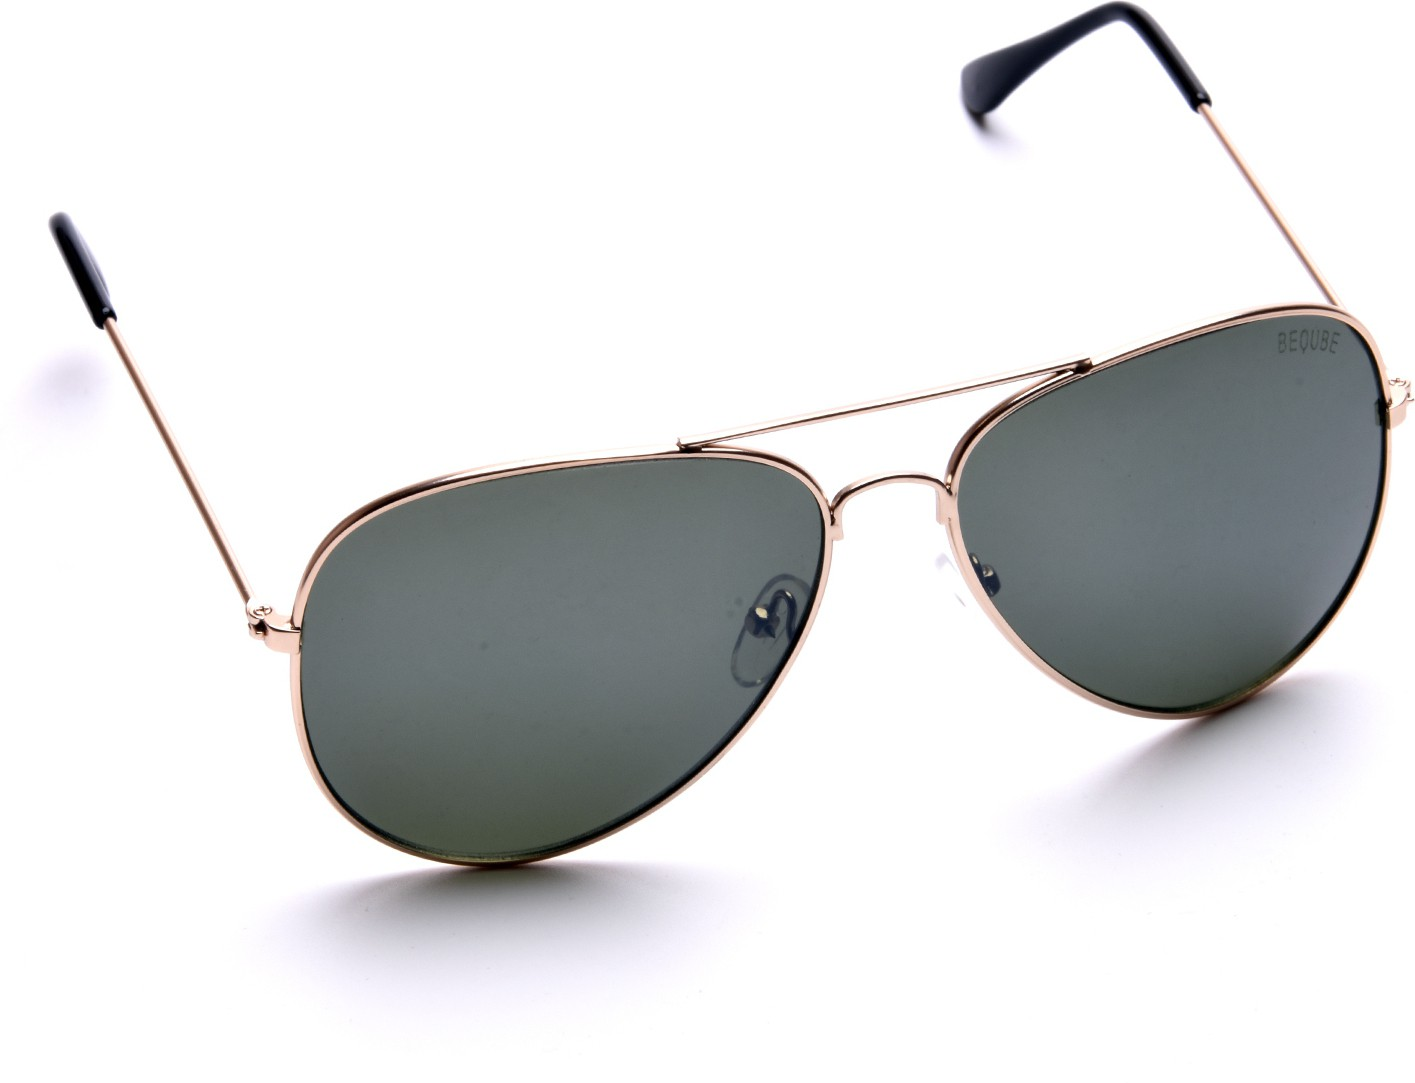 Deals - Delhi - Beqube, Petrol... <br> Mens Sunglasses<br> Category - sunglasses<br> Business - Flipkart.com